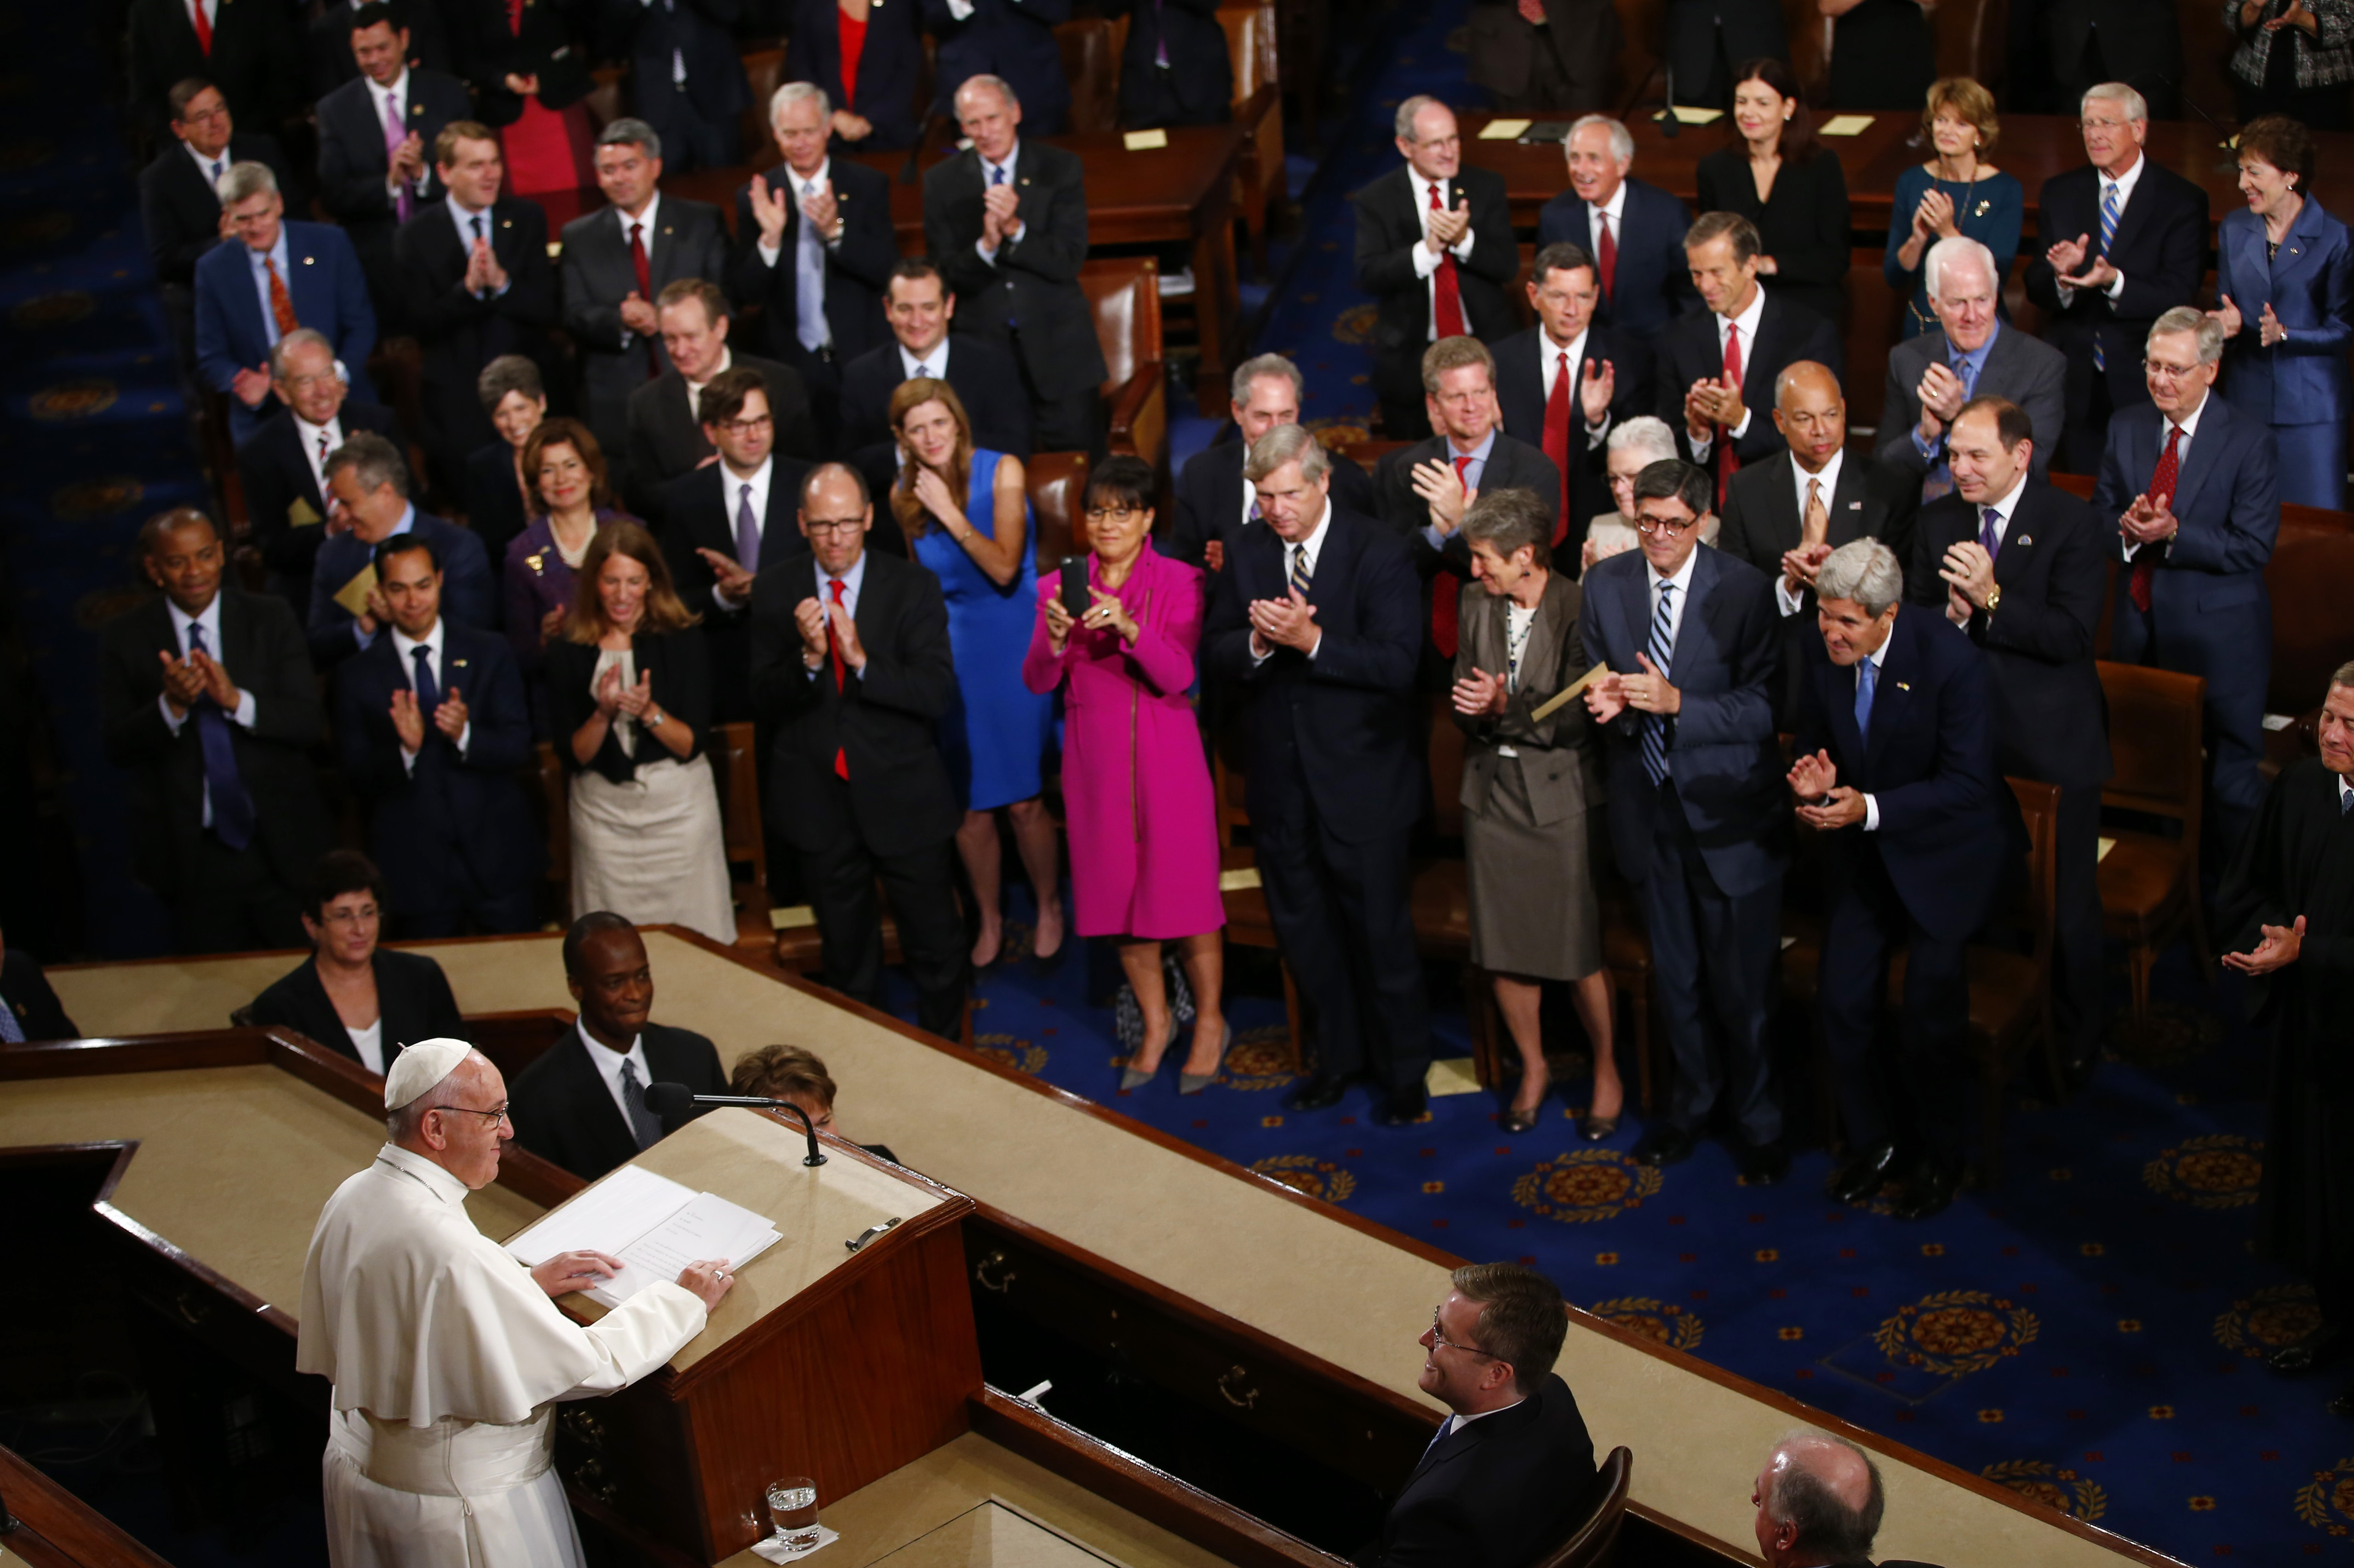 Photo: Pope Francis speaks to Congress (AP Photo)